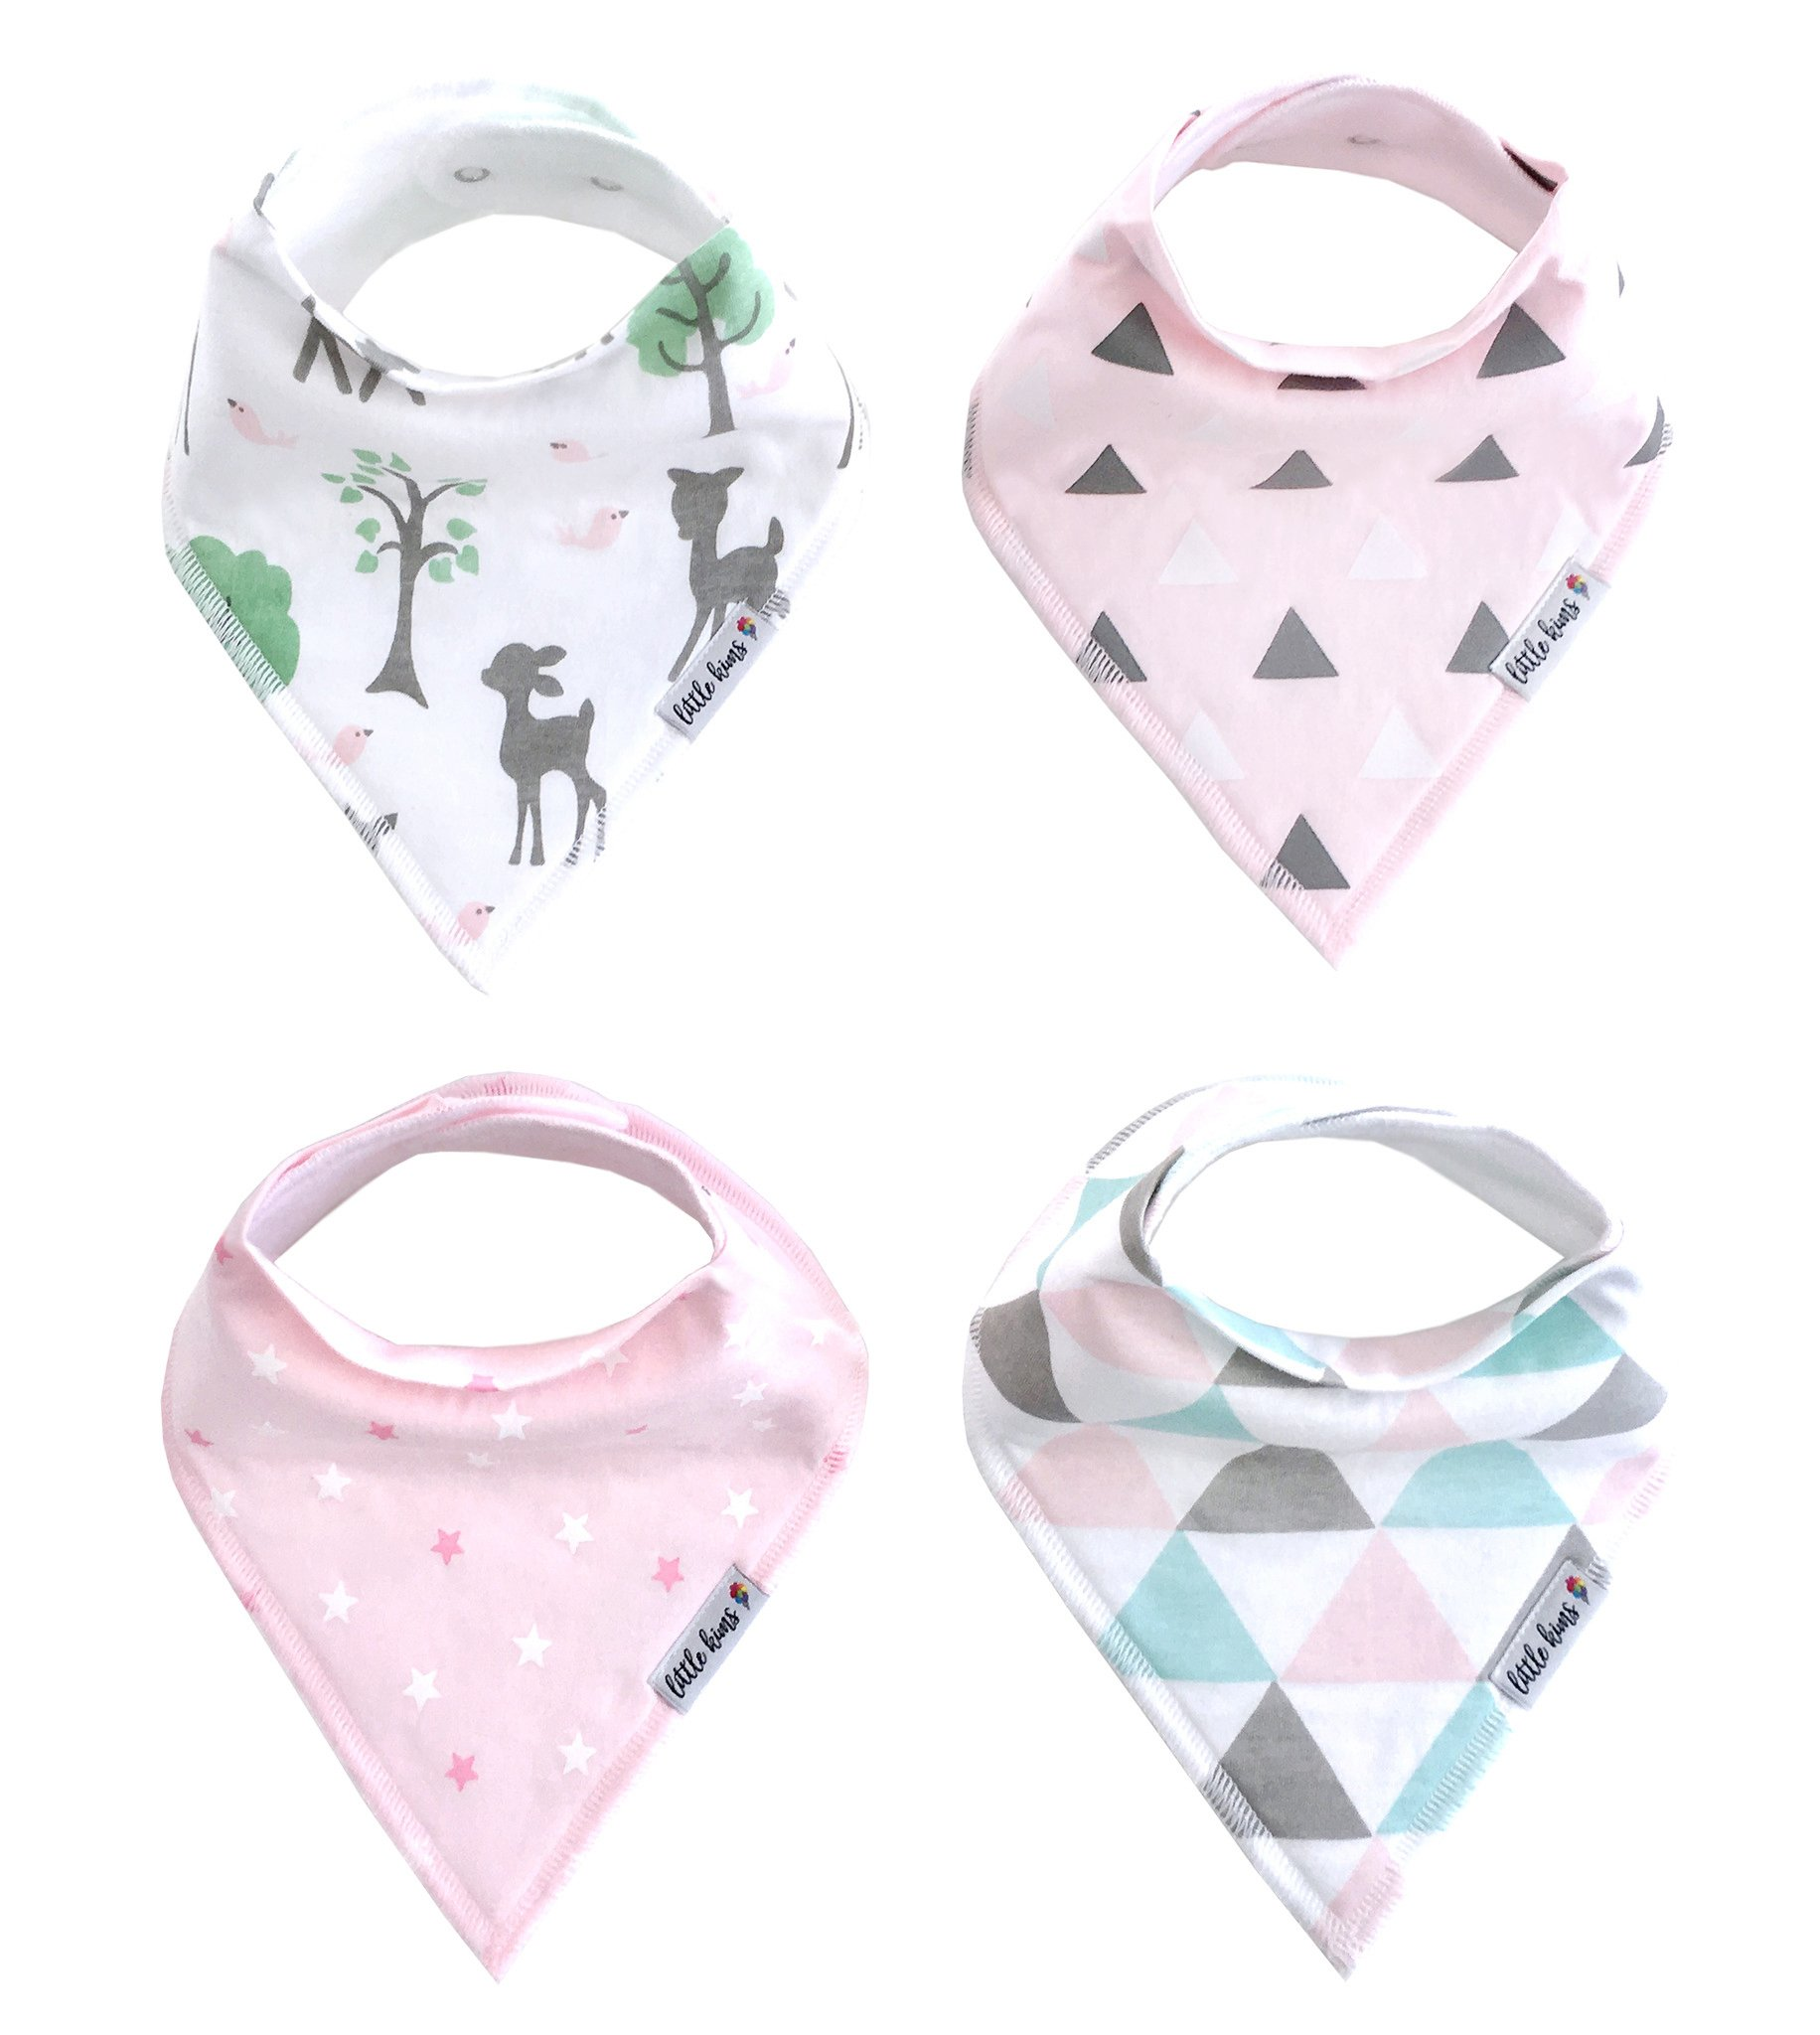 Organic Drool Bibs Bandana Bibs for Teething, Unisex Baby Bib Gift Set for Boys and Girls by Little Kims - 4-Pack Set (Enchanted Forest)